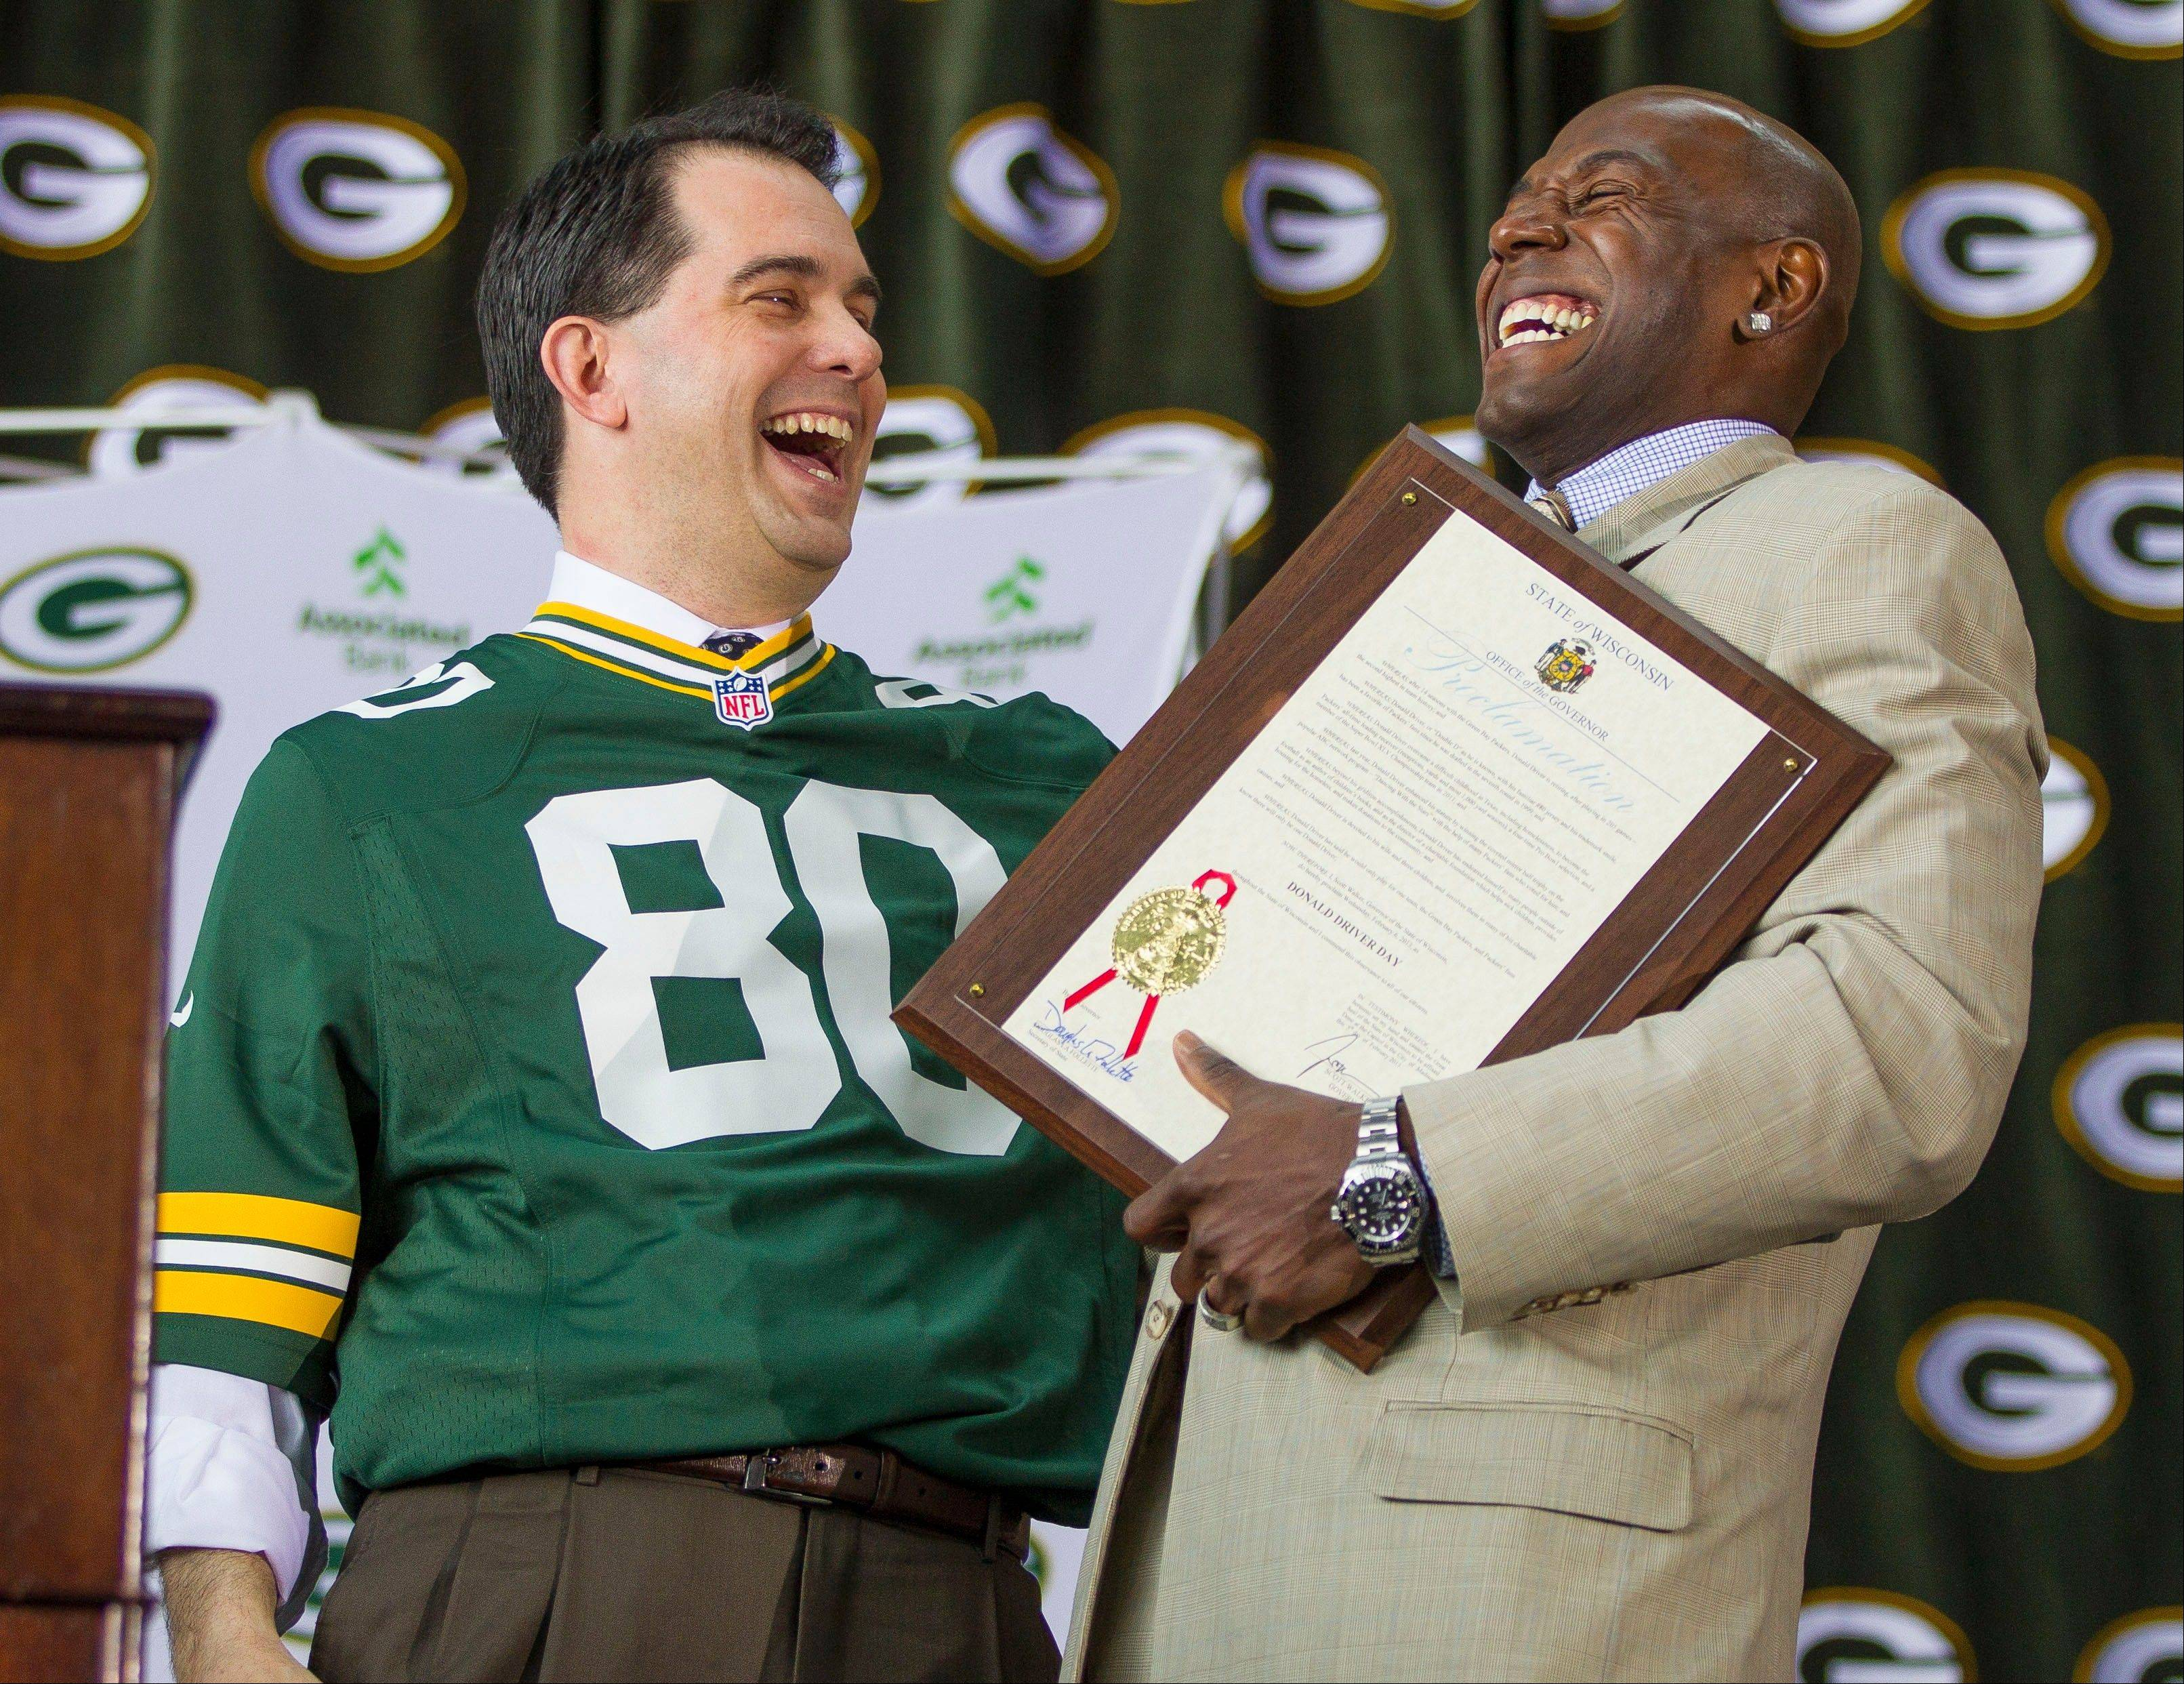 Green Packers all time leading receiver, Donald Driver, right, shares a laugh with Wisconsin Governor Scott Walker during Drivers retirement ceremony Wednesday, Feb. 6, 2013 at Lambeau Field in Green Bay, Wis. The governor had proclaimed the day Donald Driver day. (AP Photo/Mike Roemer)